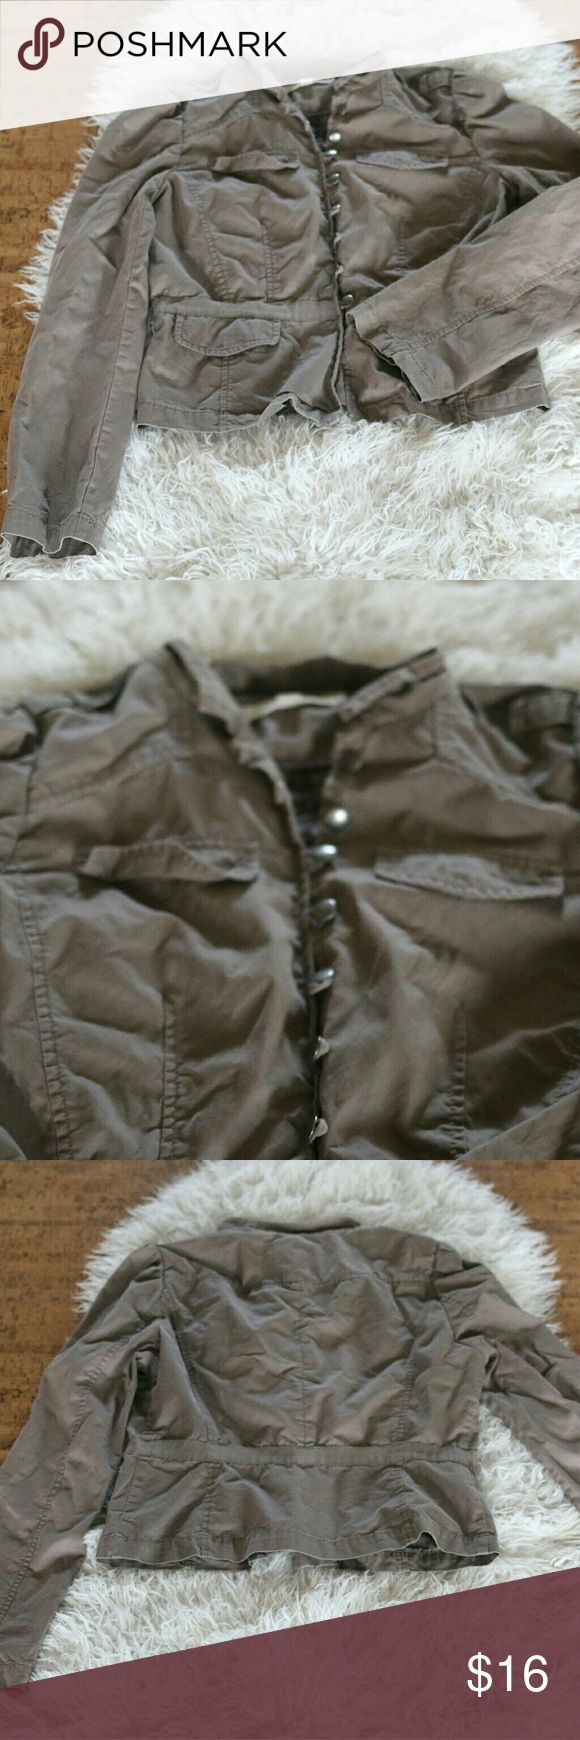 "LOFT Cargo Utility Jacket Size 8 Lightweight Zip Ann Taylor Loft women's cargo/utility jacket.  Size 8.  Lightweight (perfect for spring!).  100% cotton.  Machine wash.  Four pockets on the front (top two are faux).  Snap buttons on the shoulders.  Hook loop buttons.  Decorative band at waist.  In good, preowned condition.  No trades, offers welcome.  Measures 19"" pit to pit, 19"" shoulder to waist. LOFT Jackets & Coats Utility Jackets"